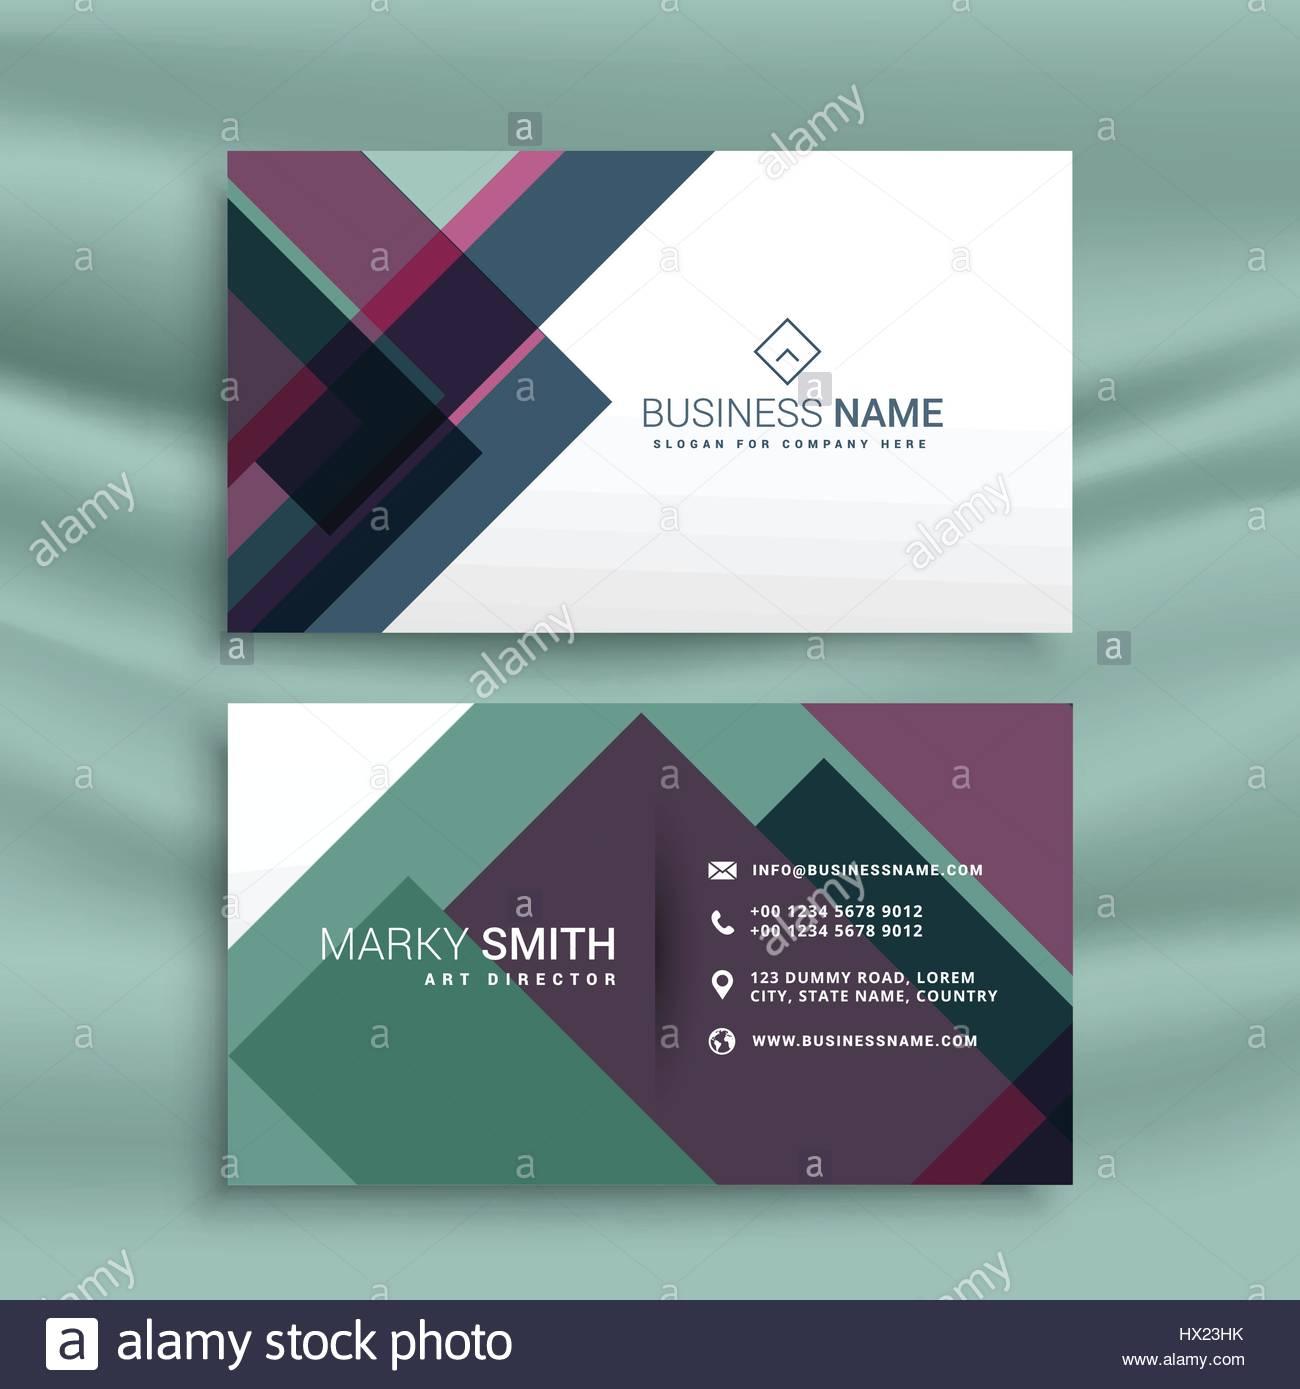 Business card presentation template with abstract colorful shapes business card presentation template with abstract colorful shapes magicingreecefo Image collections